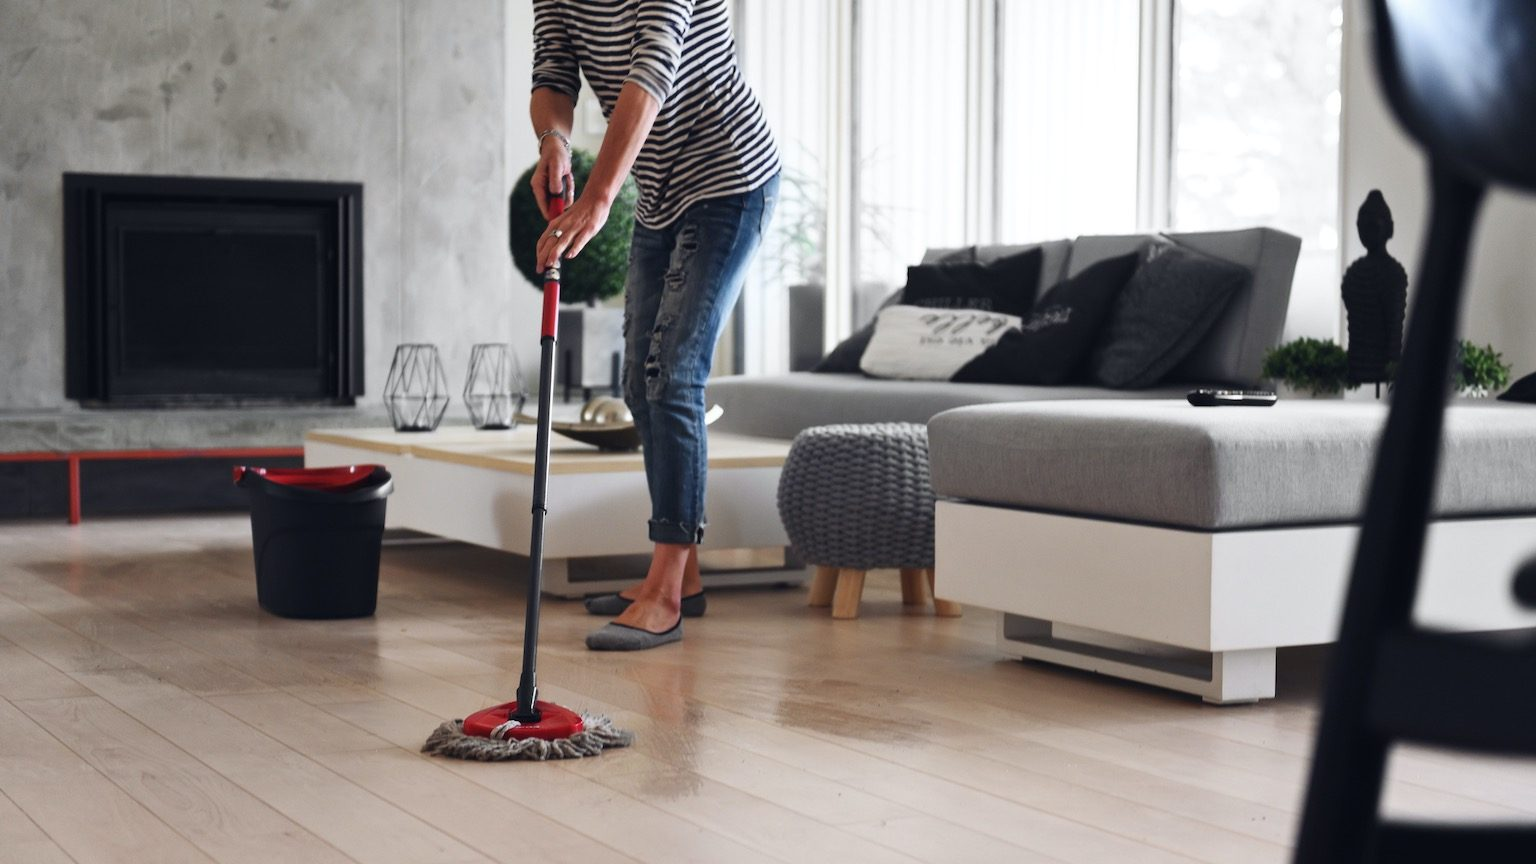 Mature woman cleaning floor while quarantined at home, Quebec, canada